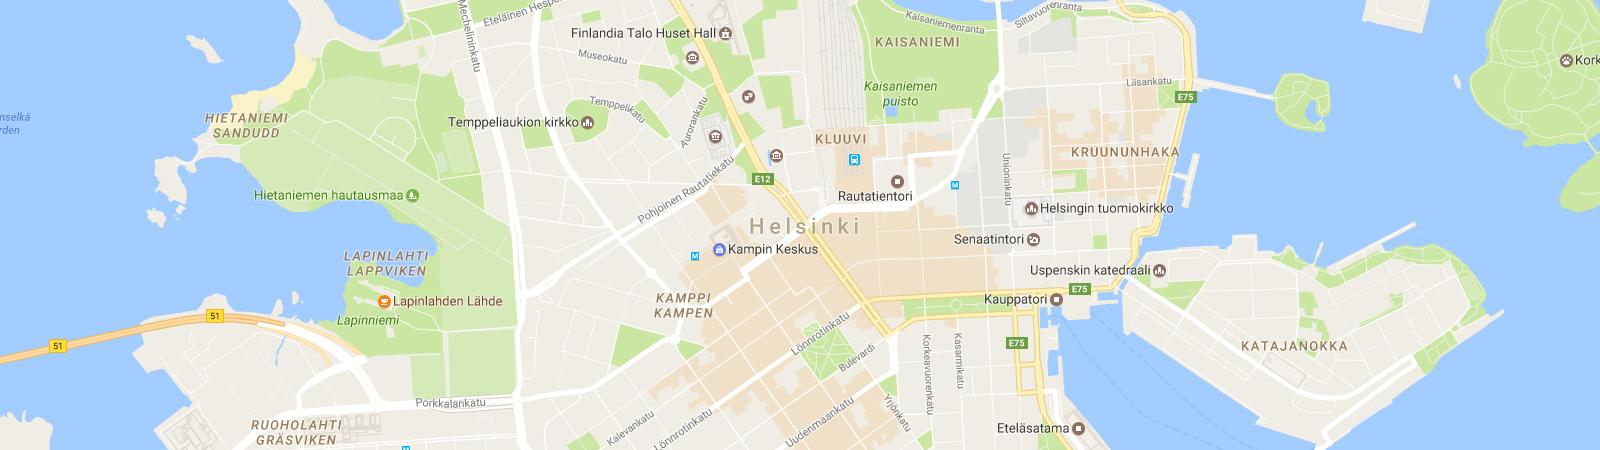 DriveNow_carsharing_helsinki_city_page_business_area